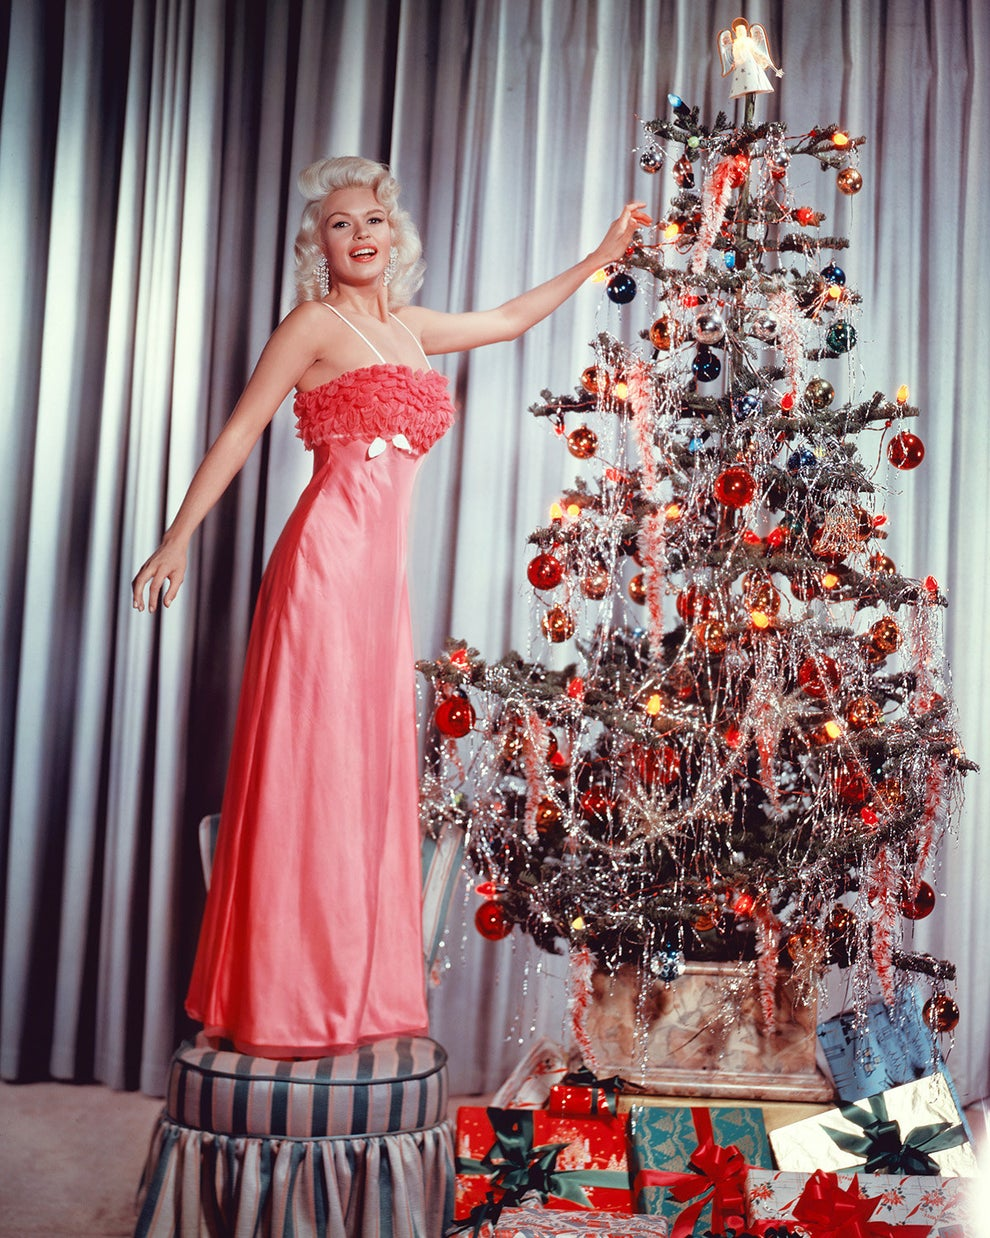 The glamorous Jayne Mansfield placing the angel topper on her Christmas tree in 1960.